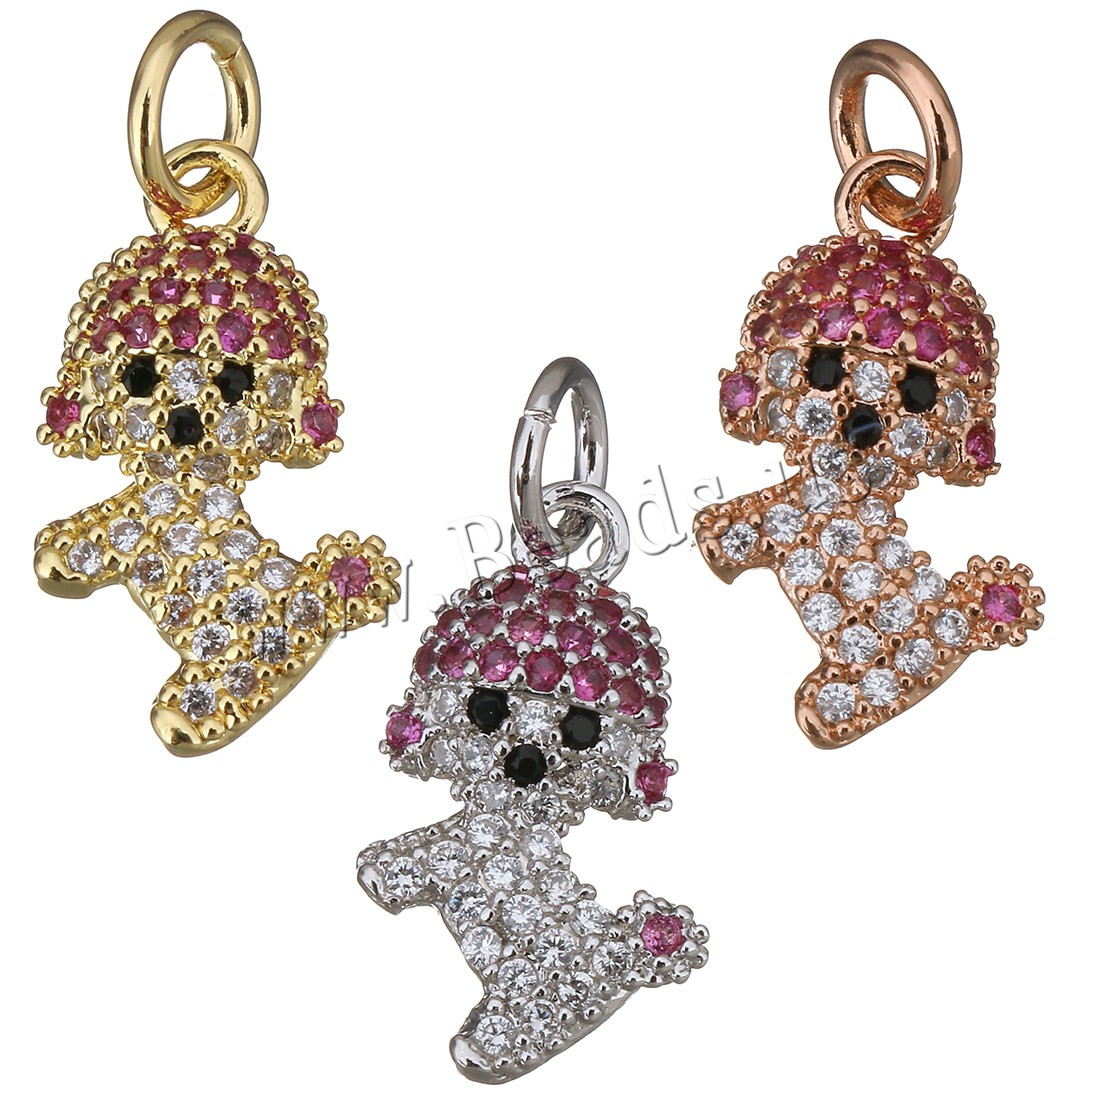 Buy Cubic Zirconia Micro Pave Brass Pendant Dog plated micro pave cubic zirconia colors choice 9x15x3mm Hole:Approx 3mm 1 Sold Lot